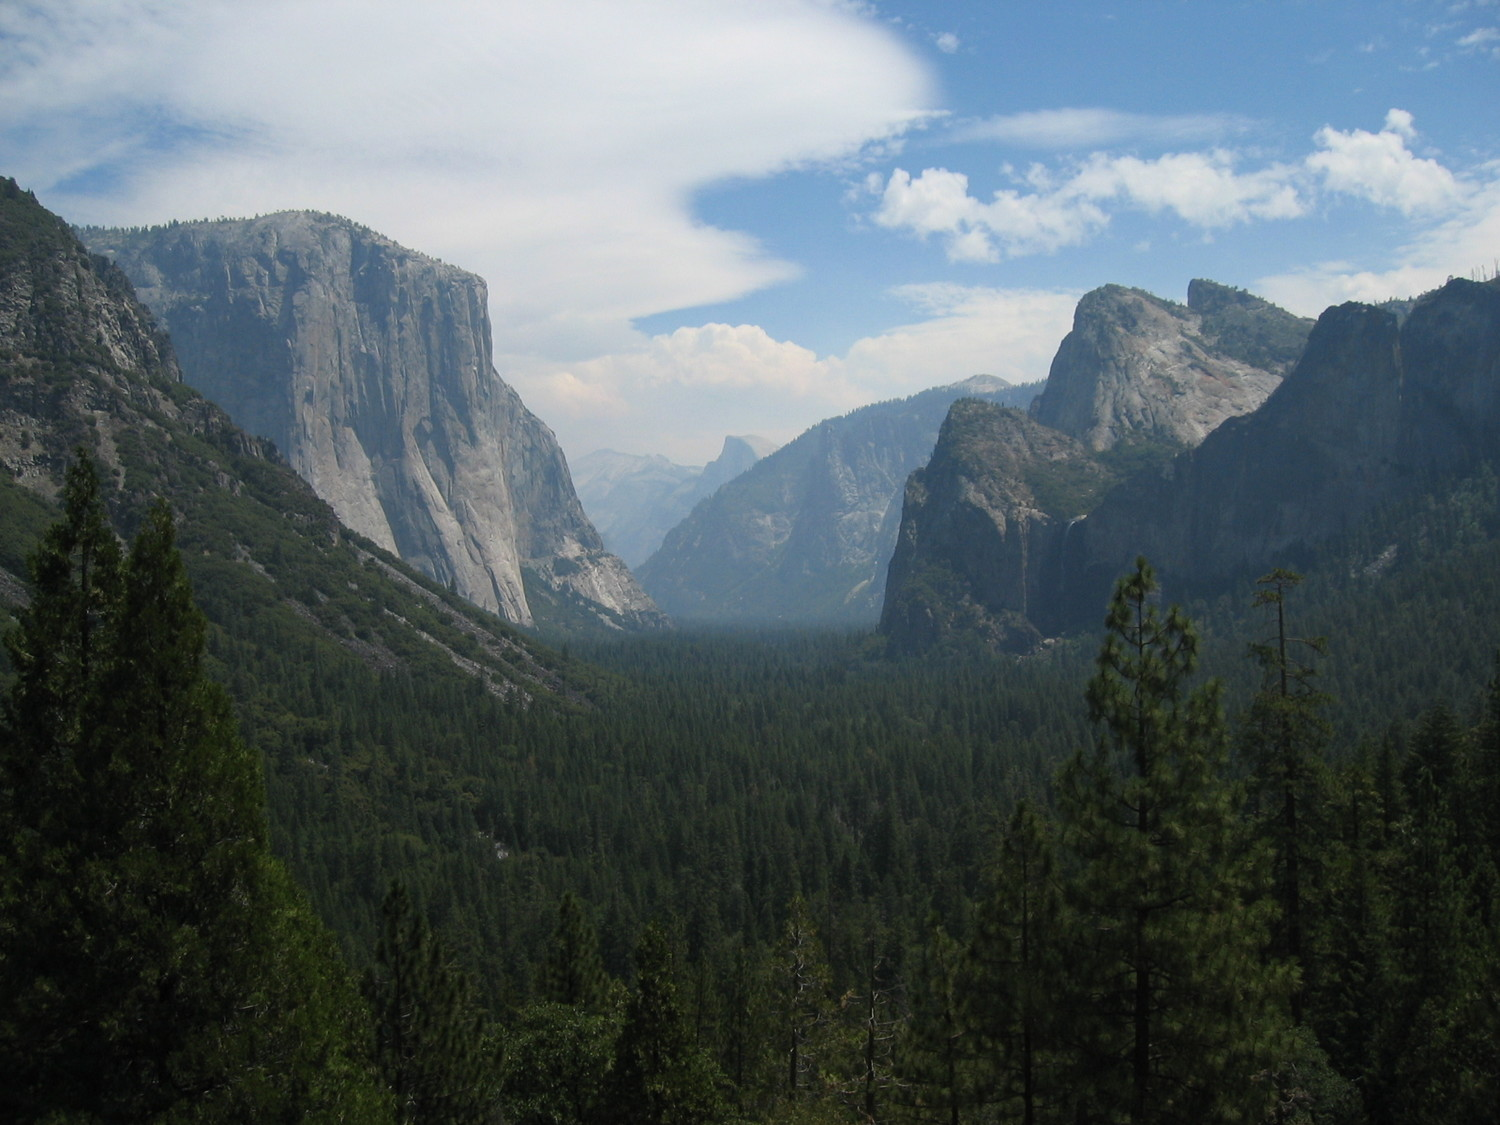 Yosemite National Park / El Capitan - Half Dome